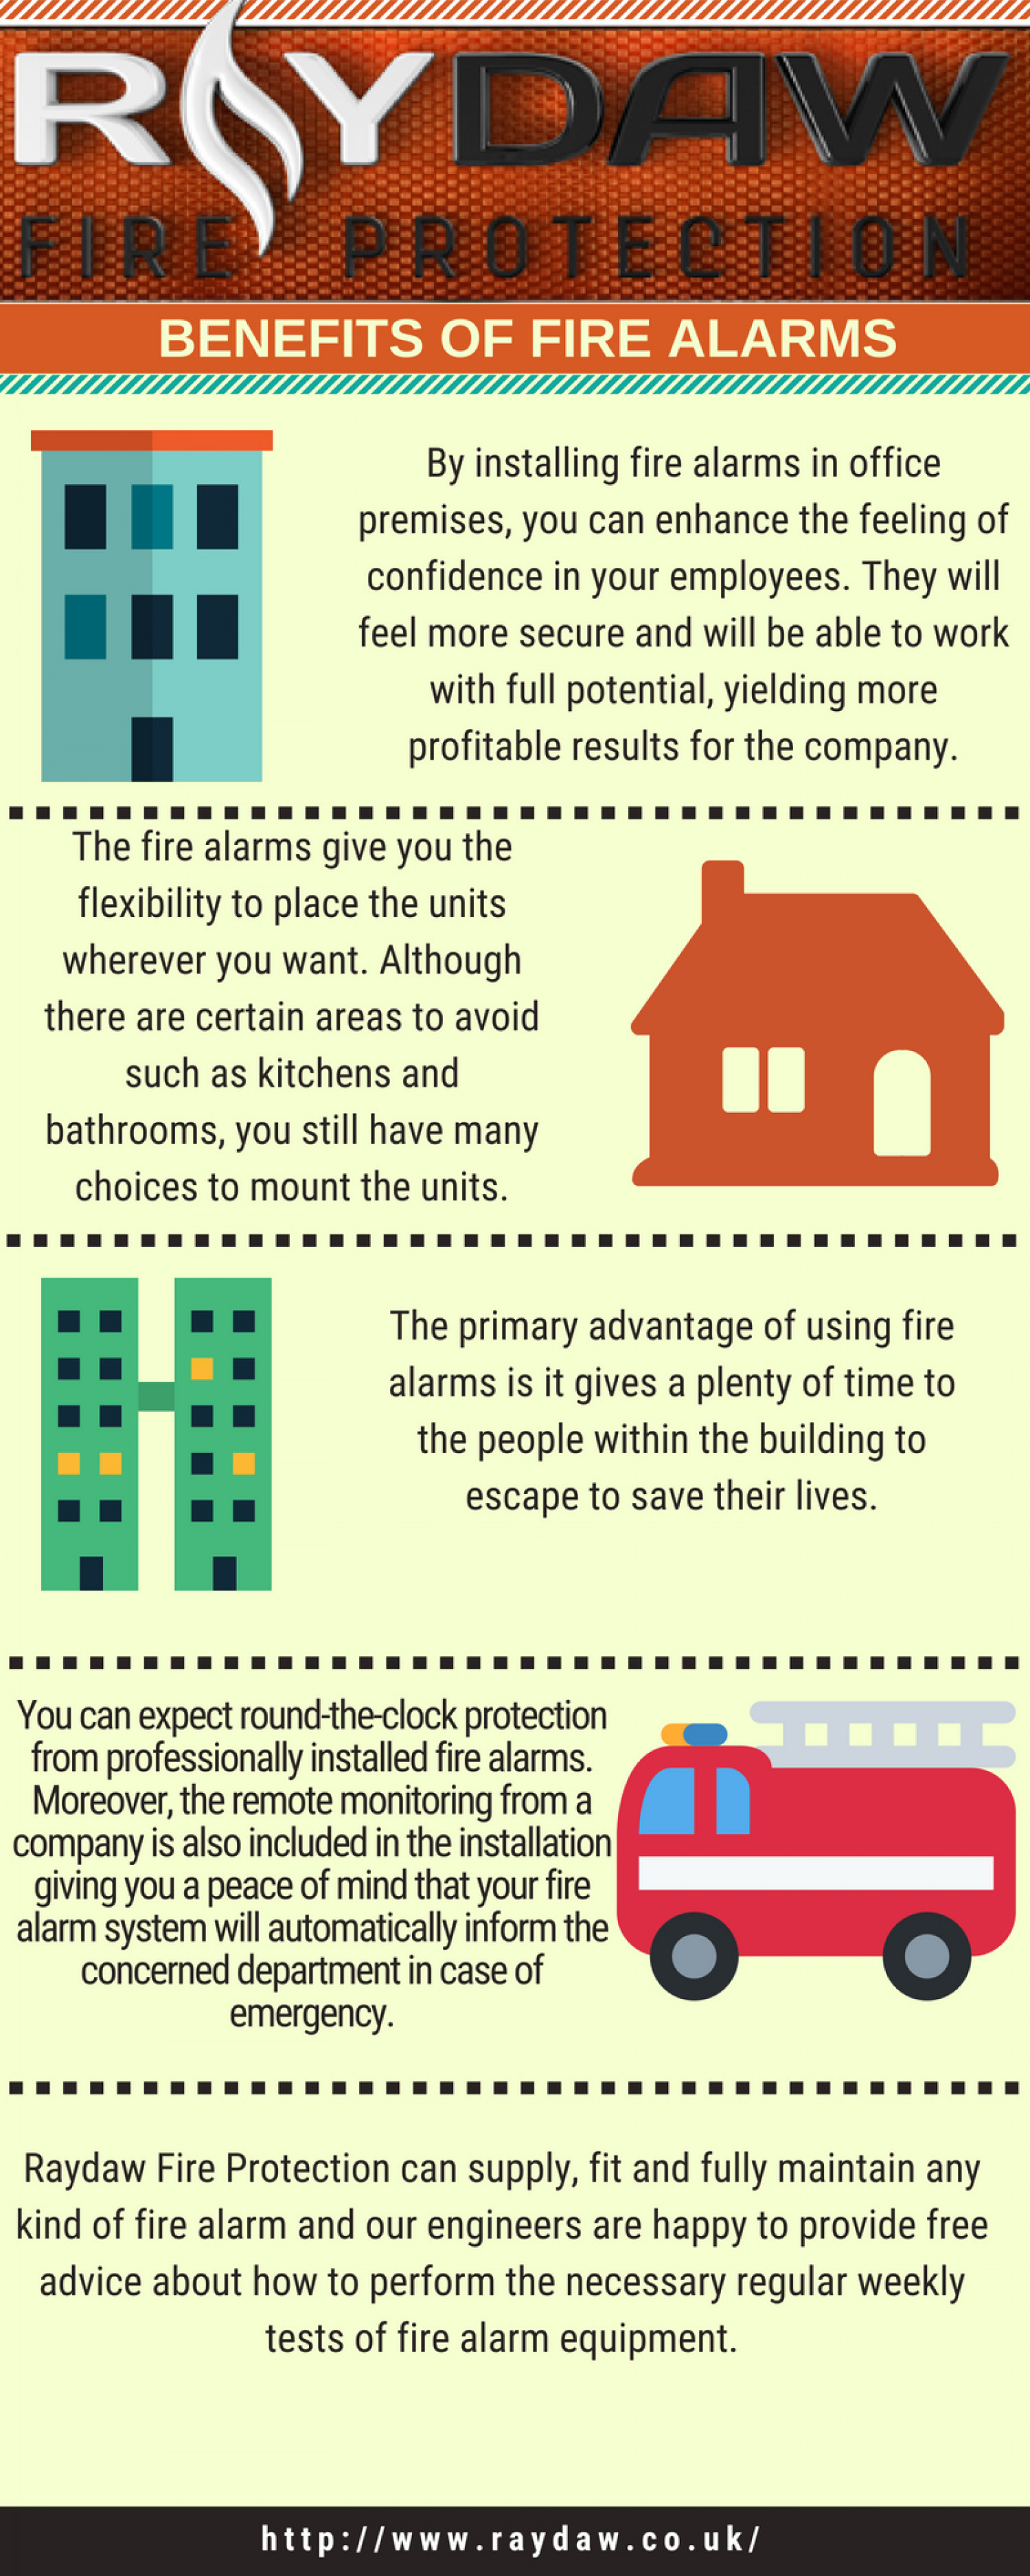 Benefits of Fire Alarms Infographic